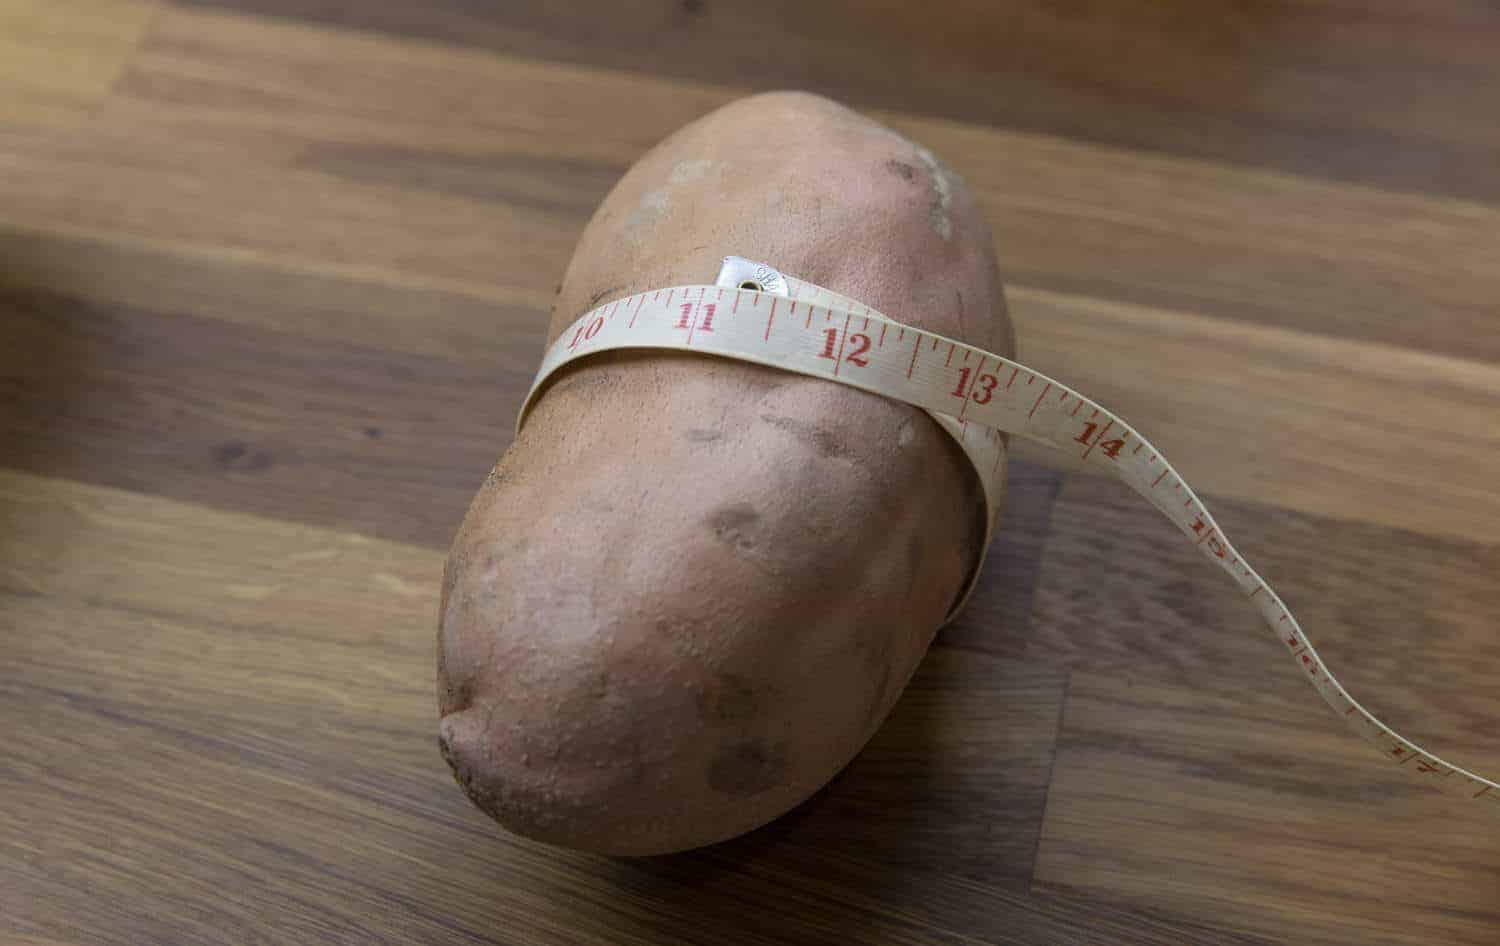 Instant Pot Sweet Potato Recipe (Pressure Cooker Sweet Potato Recipe): how to make sweet potatoes